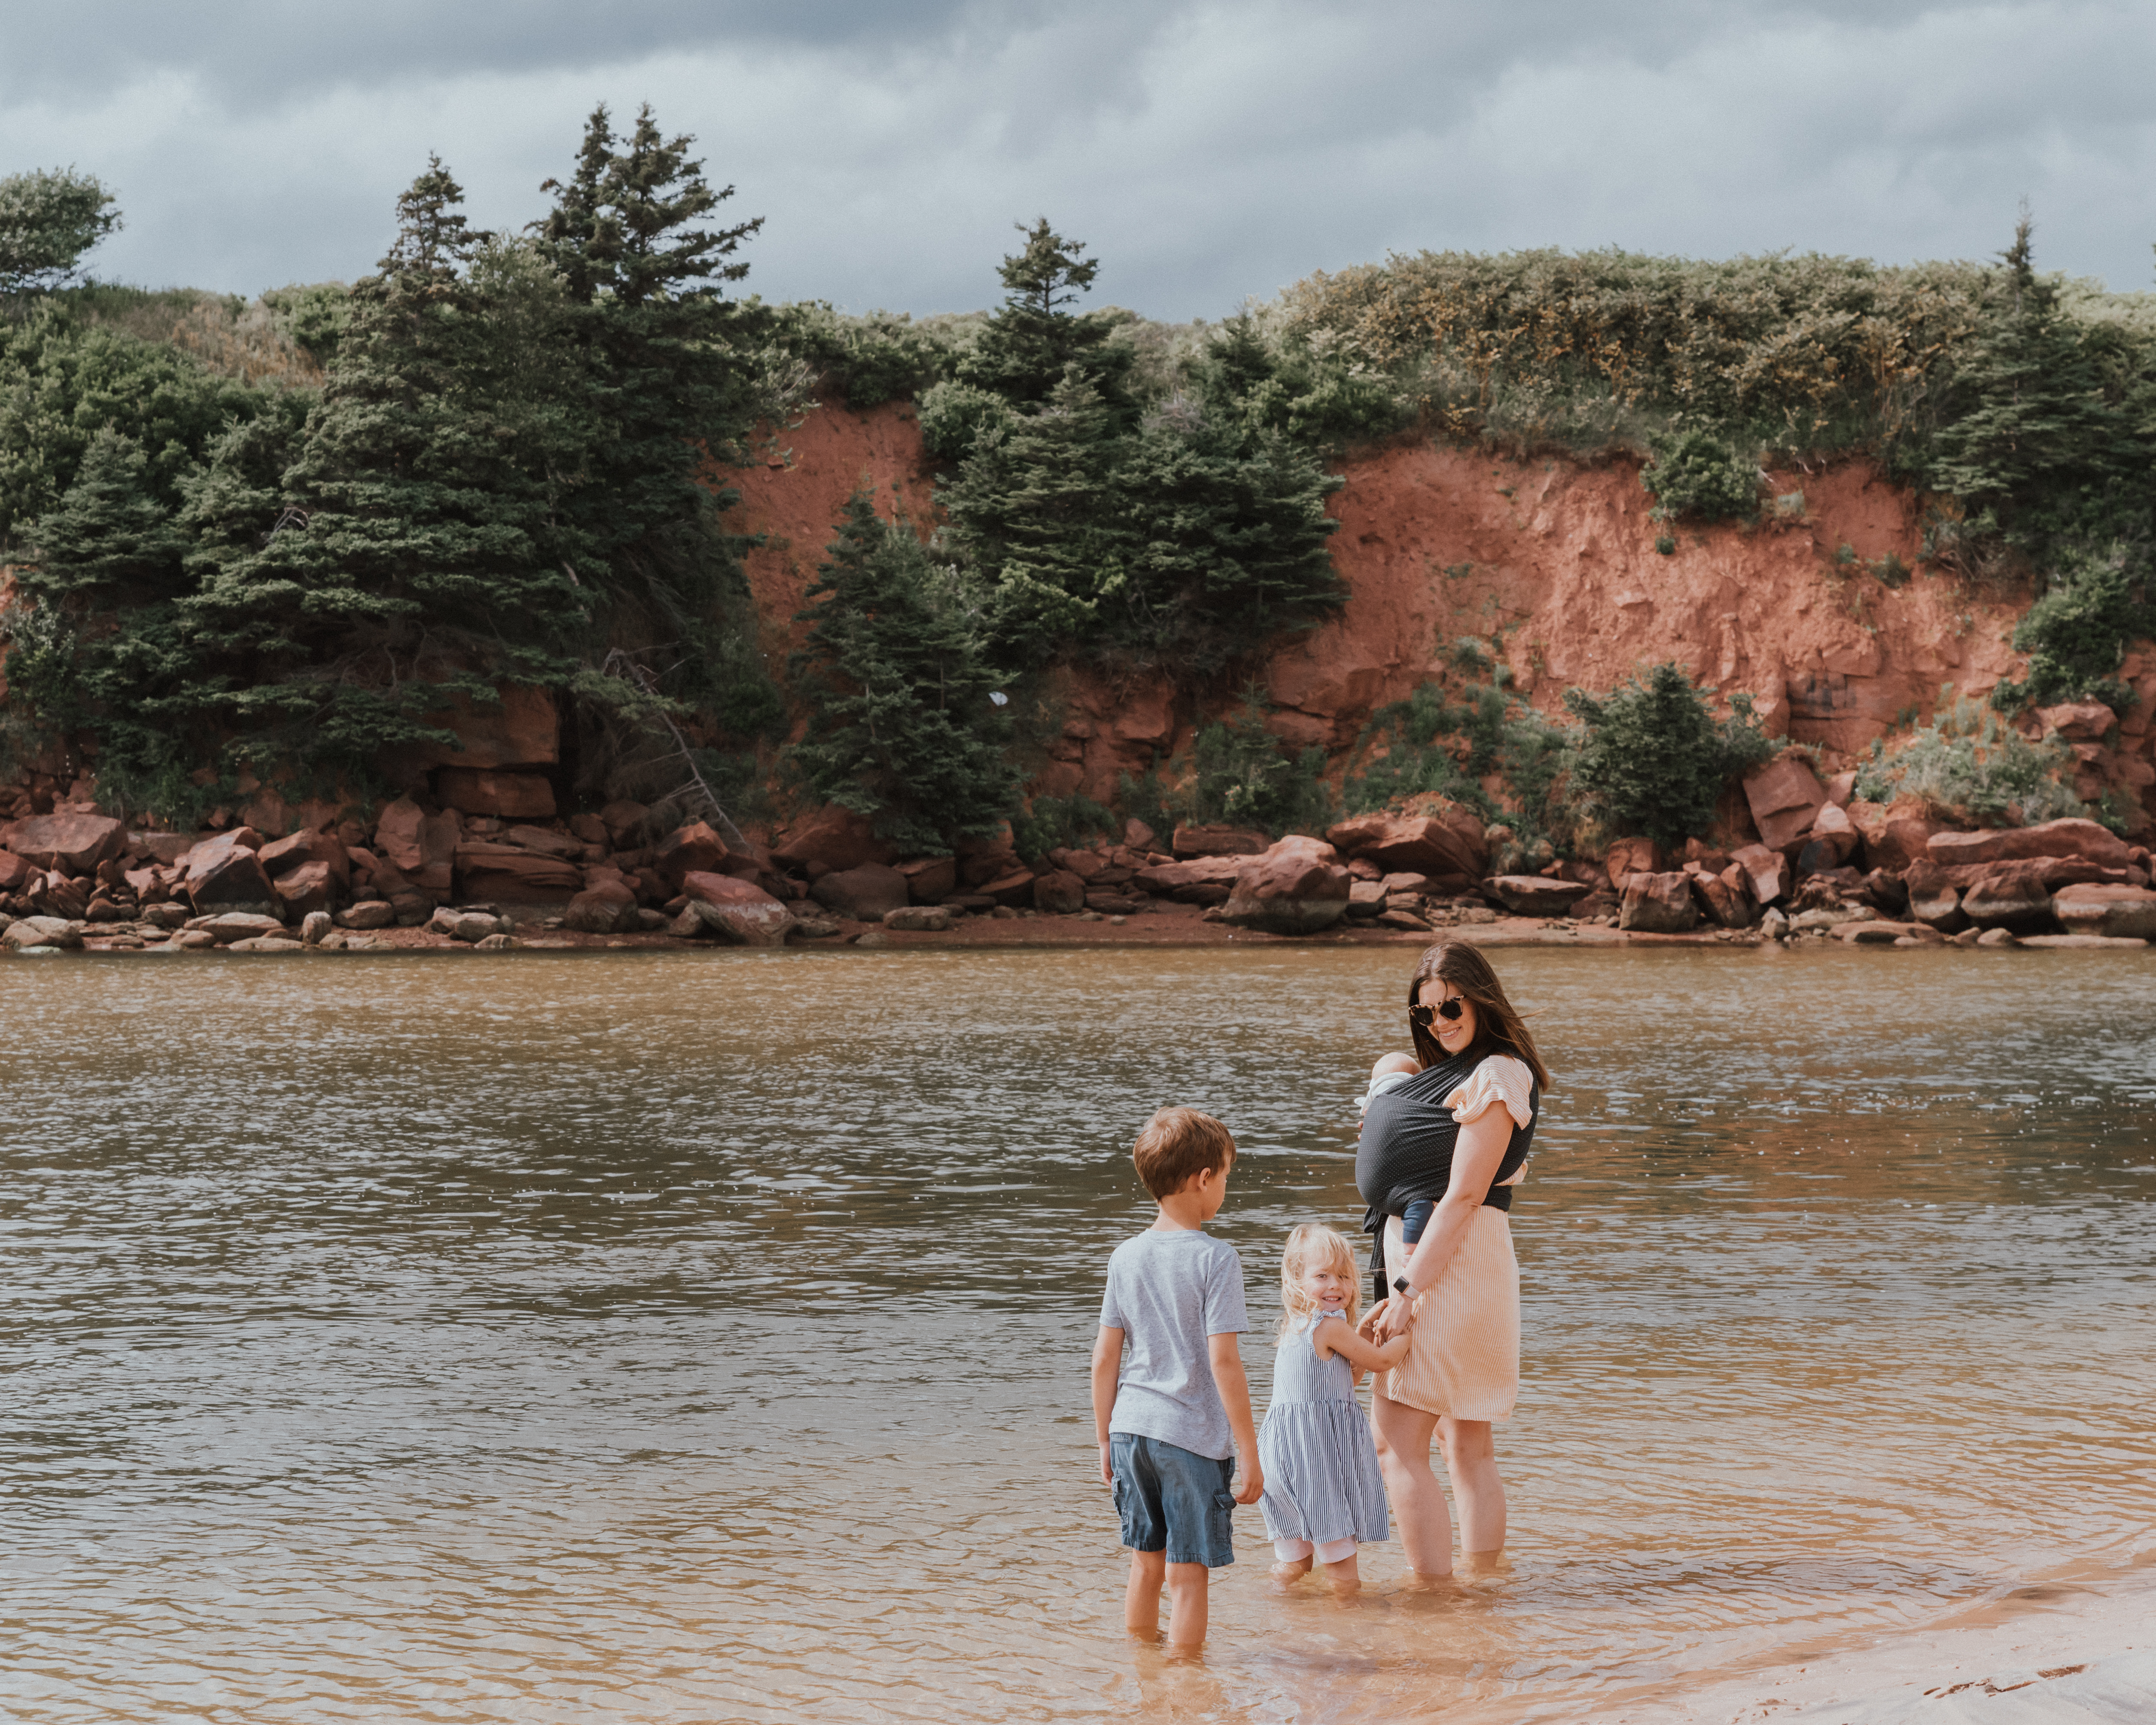 Our Family Vacation to the Rodd Brudenell River Resort   The Wild Decoelis